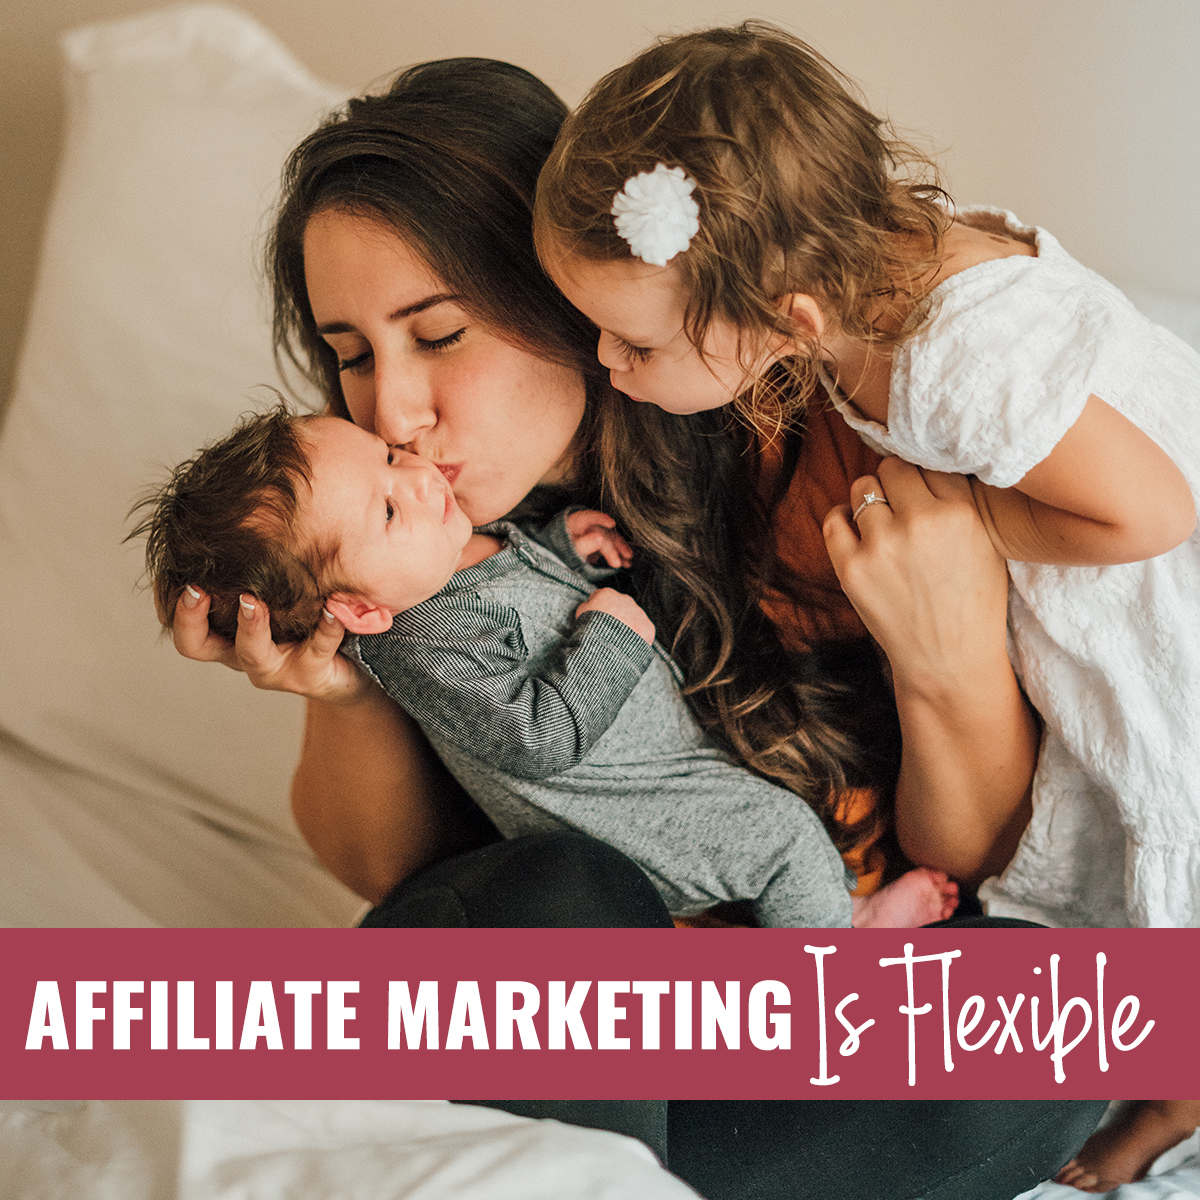 Affiliate marketing is flexible